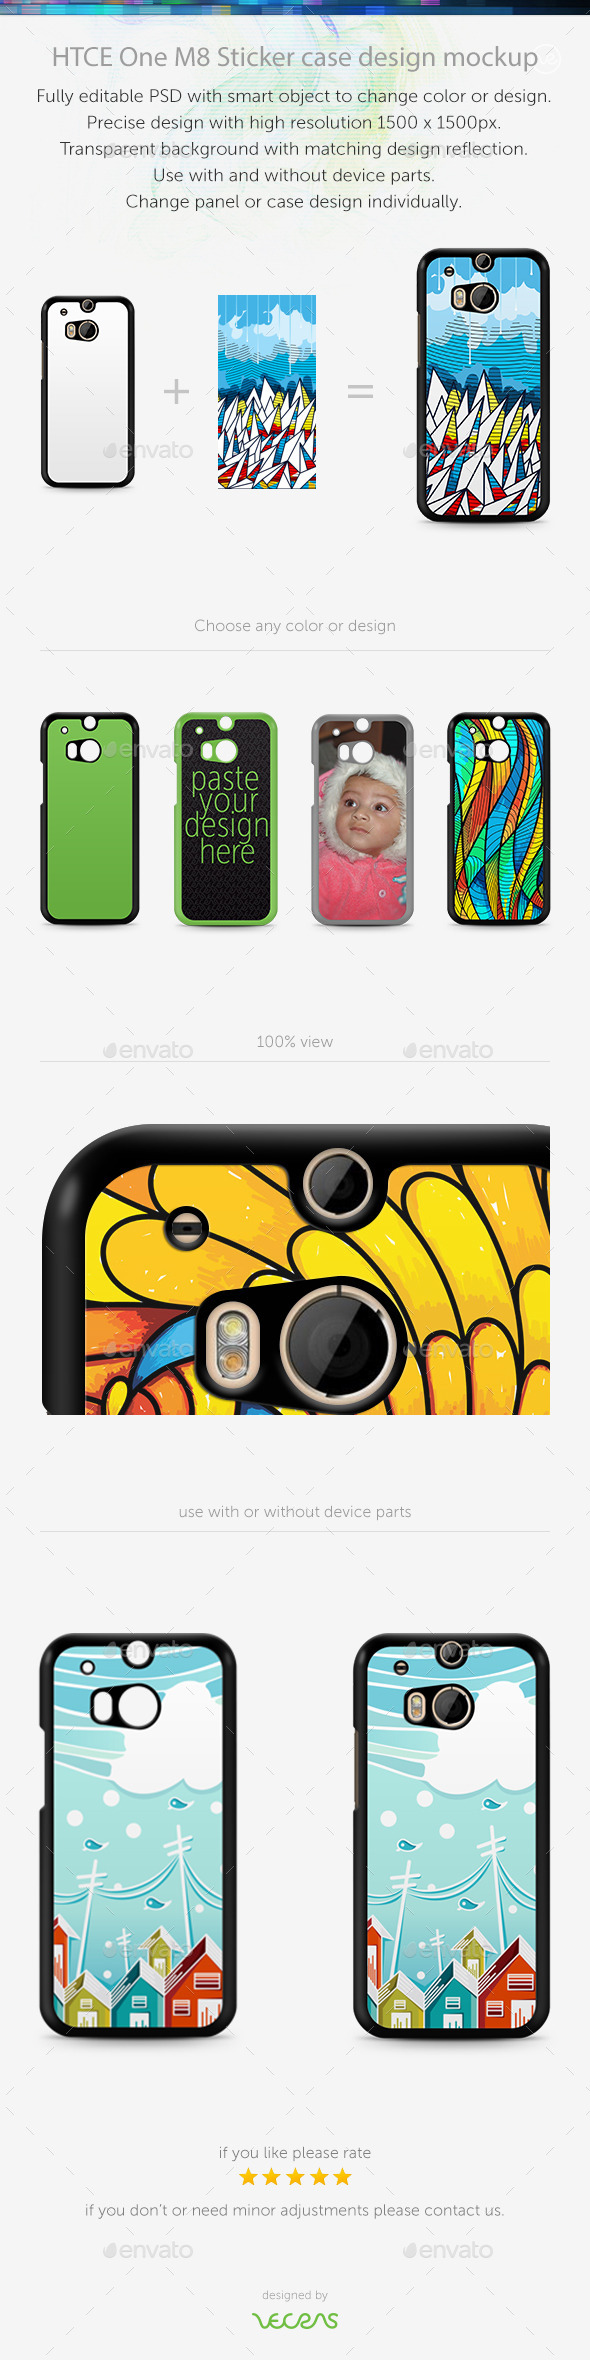 GraphicRiver HTCE One M8 Sticker Case Design Mockup 10401363